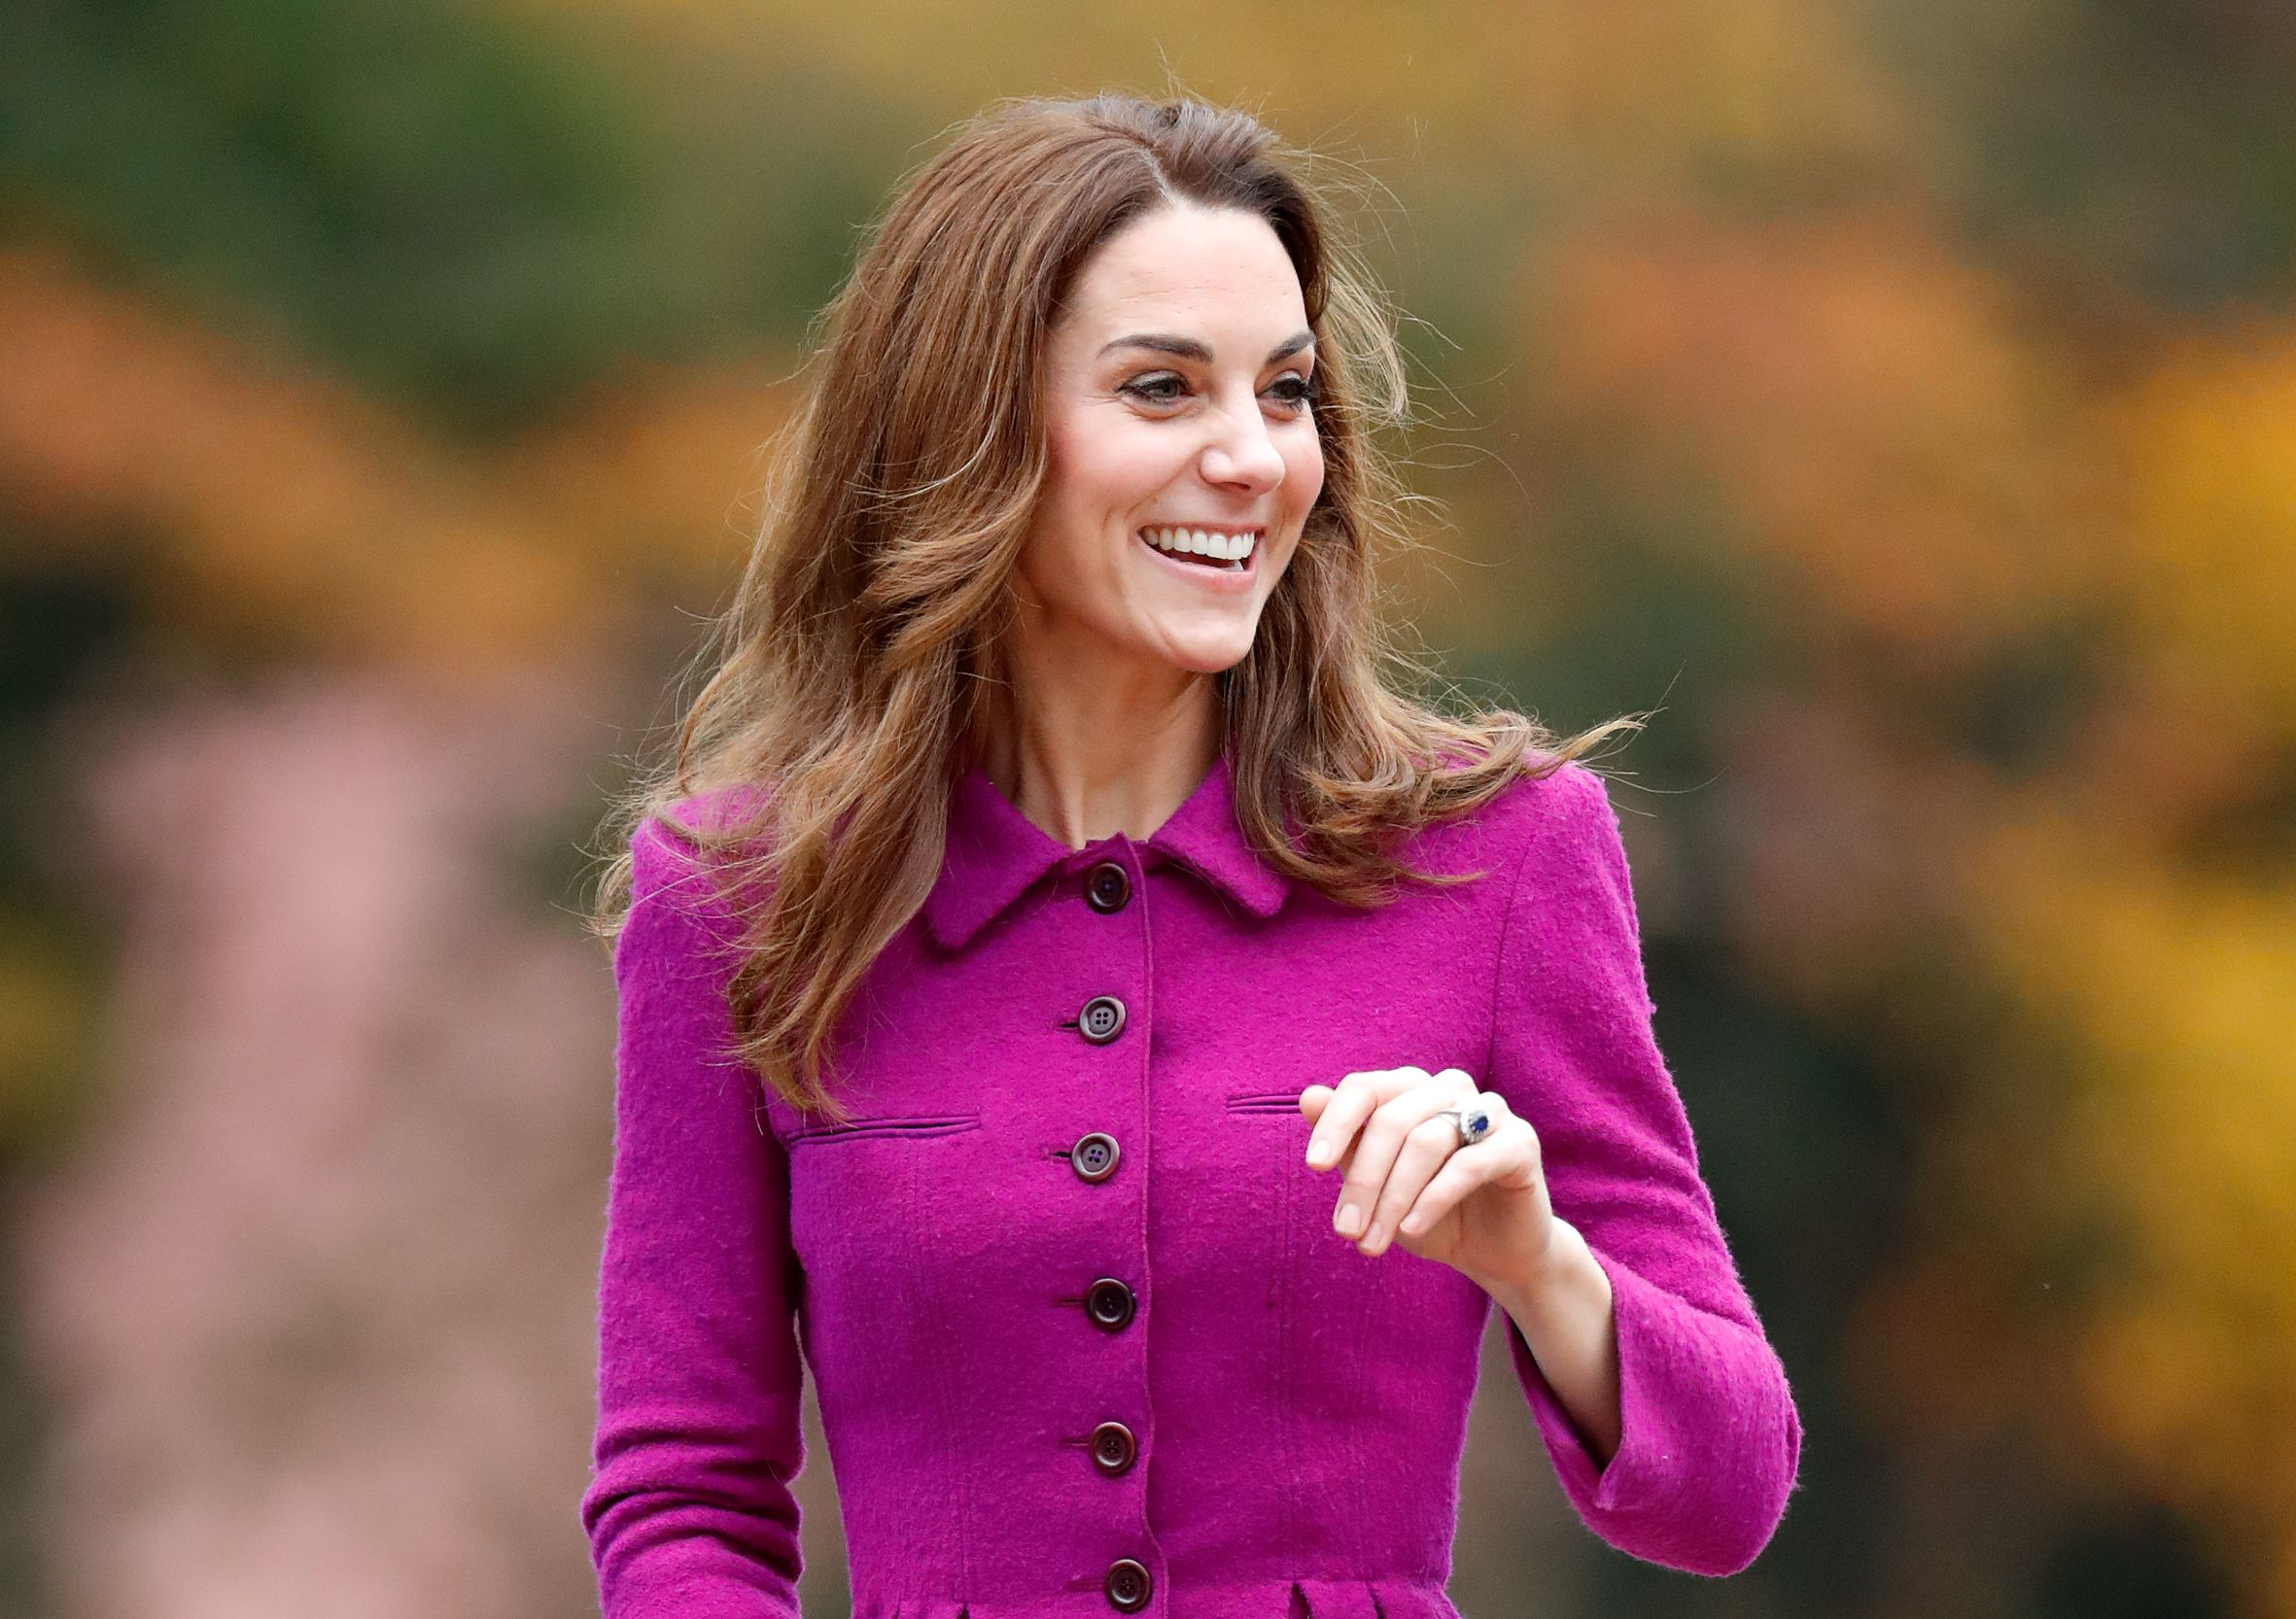 Kate Middleton arrives to open 'The Nook' Children's Hospice on November 15, 2019   Photo: Getty Images